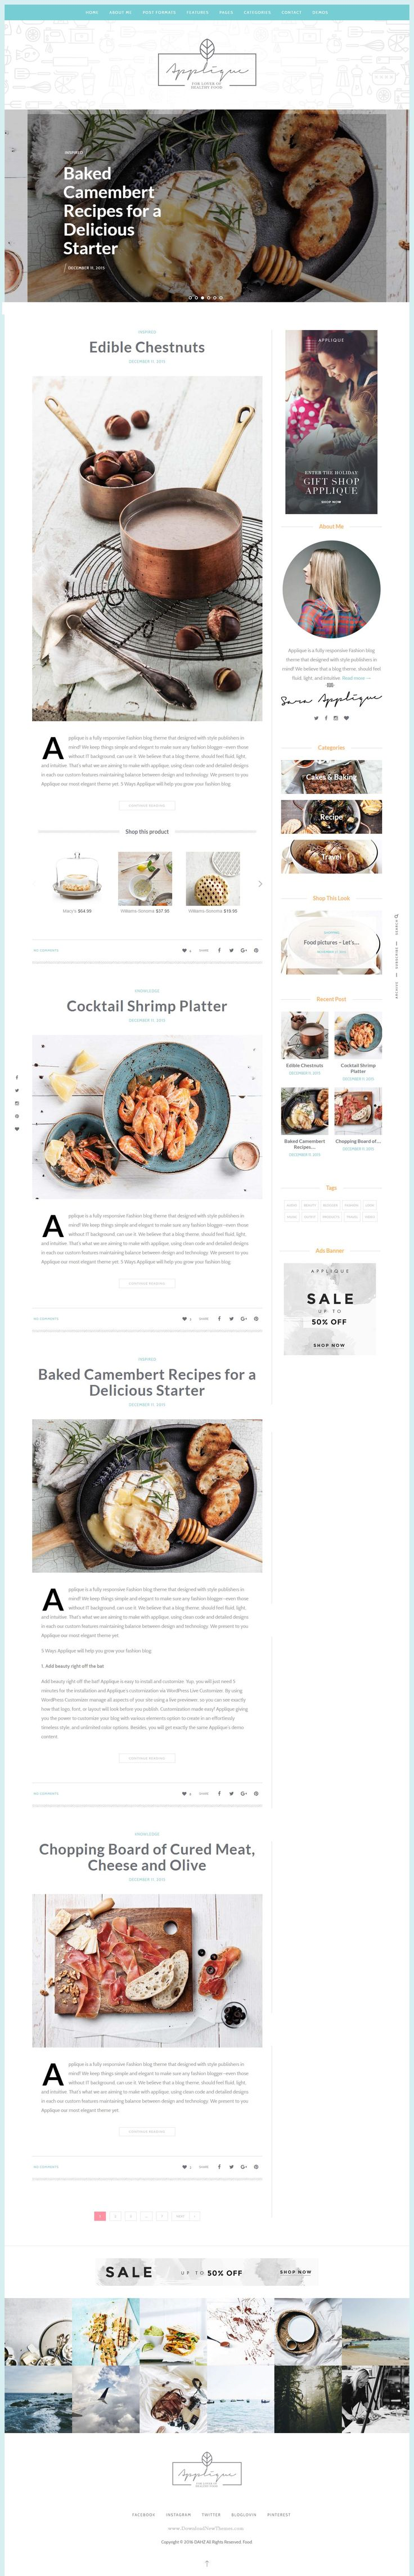 Beautifully Design Appique Food and Recipes Blog Website Theme Download…